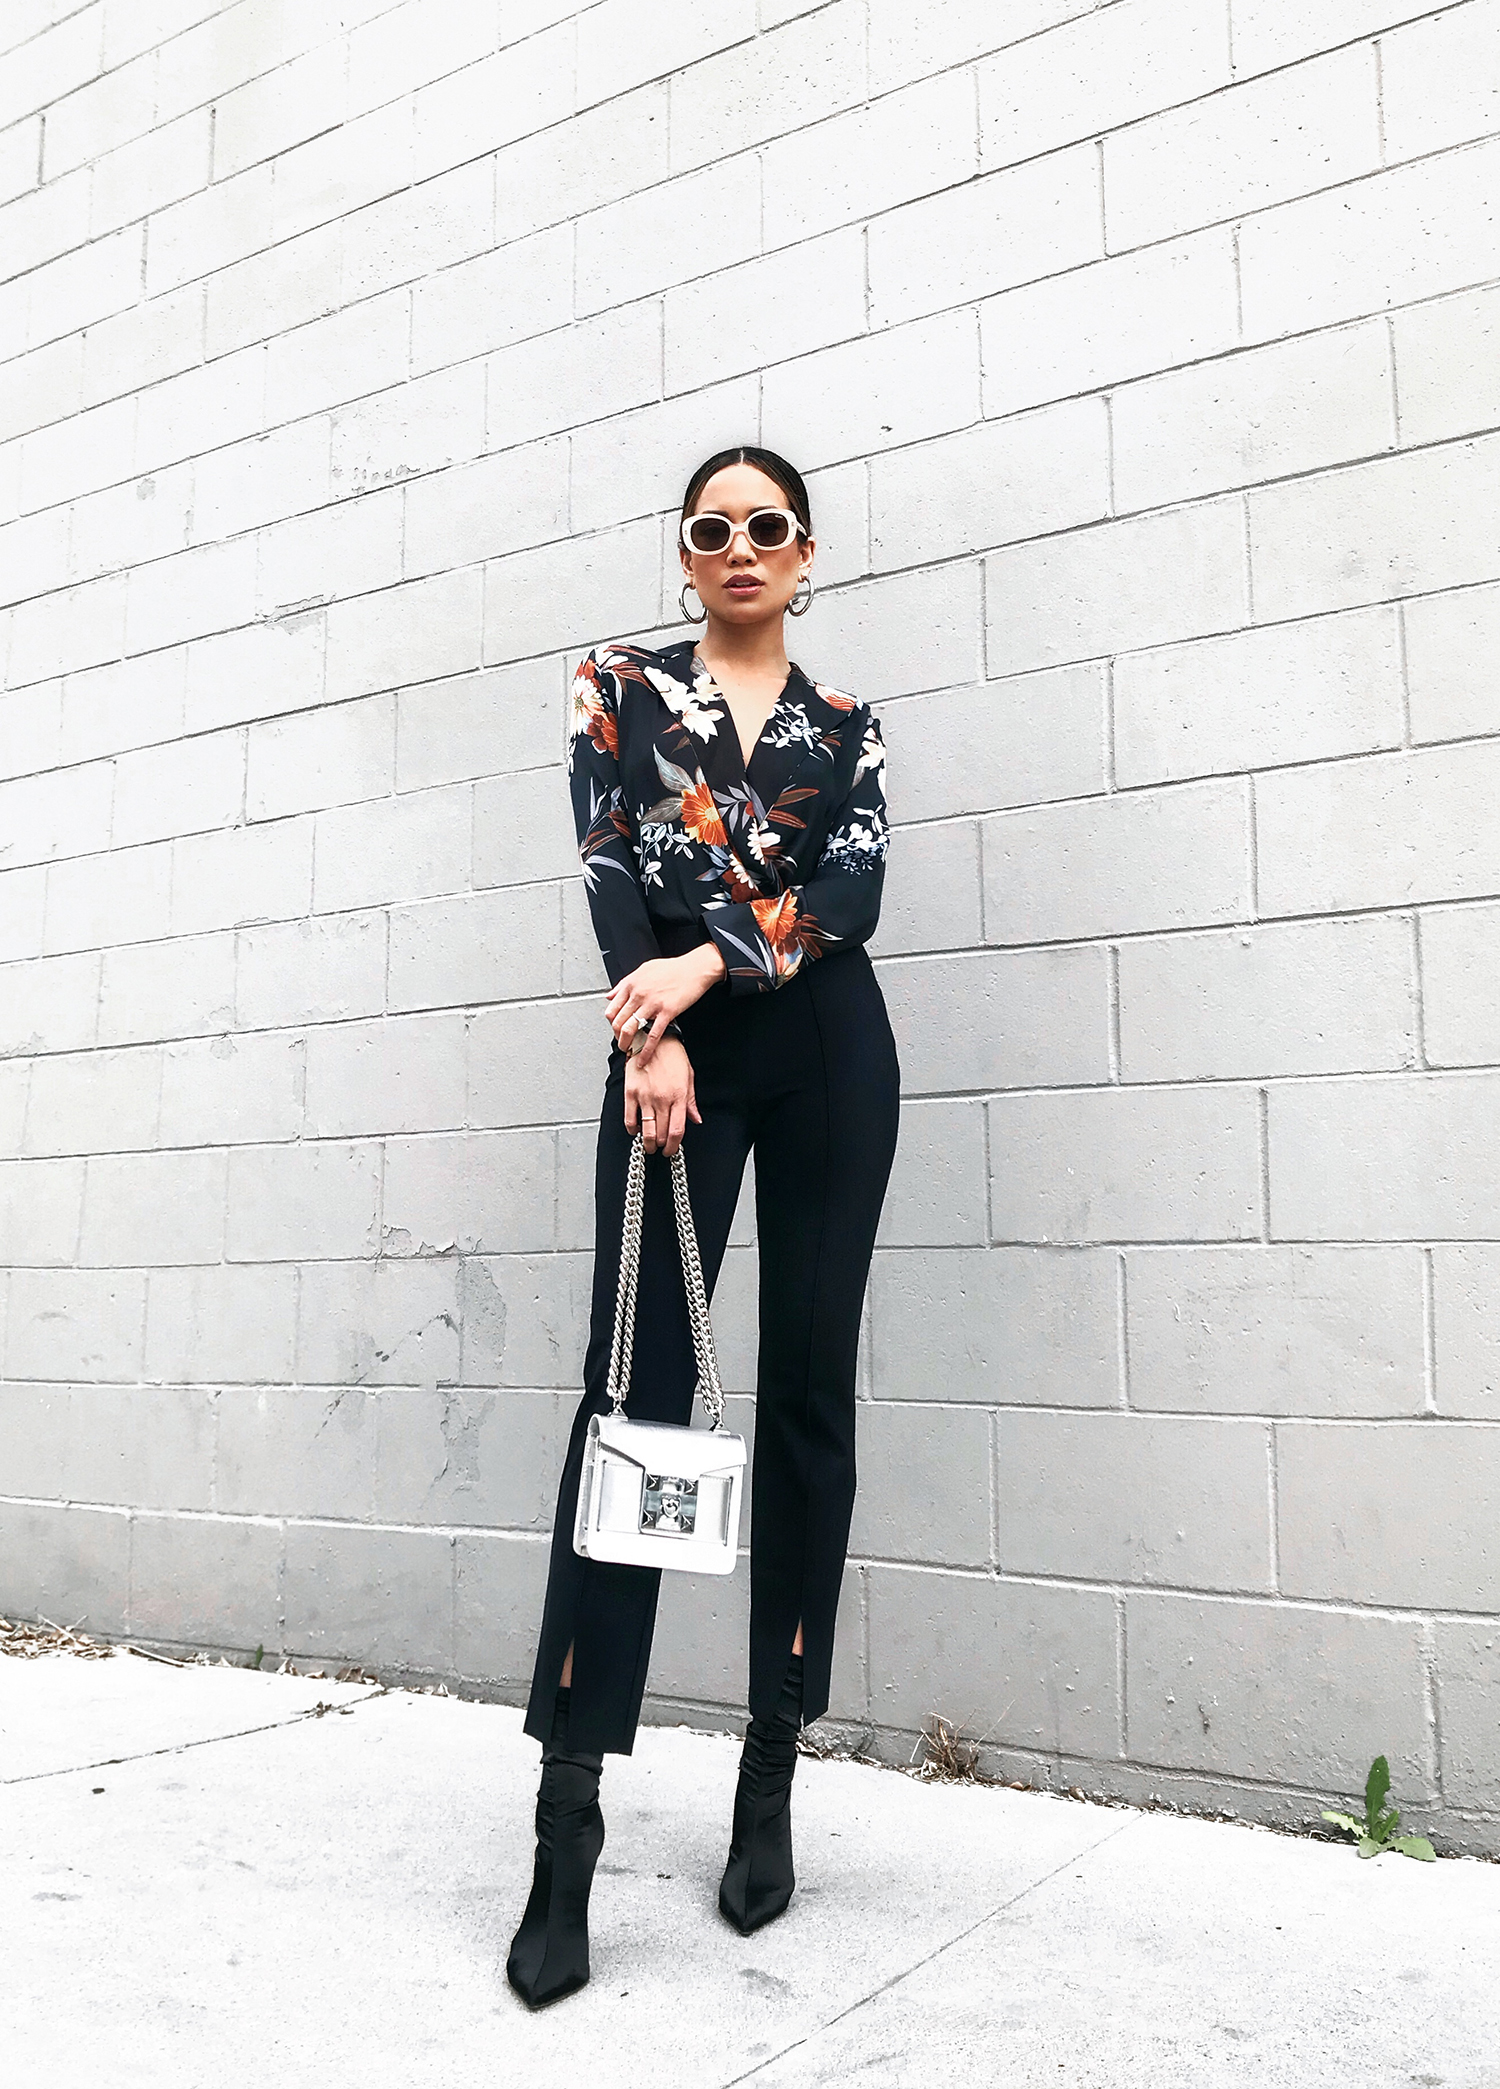 Jessi Malay wearing Zara Floral Blouse OOTD Streetstyle